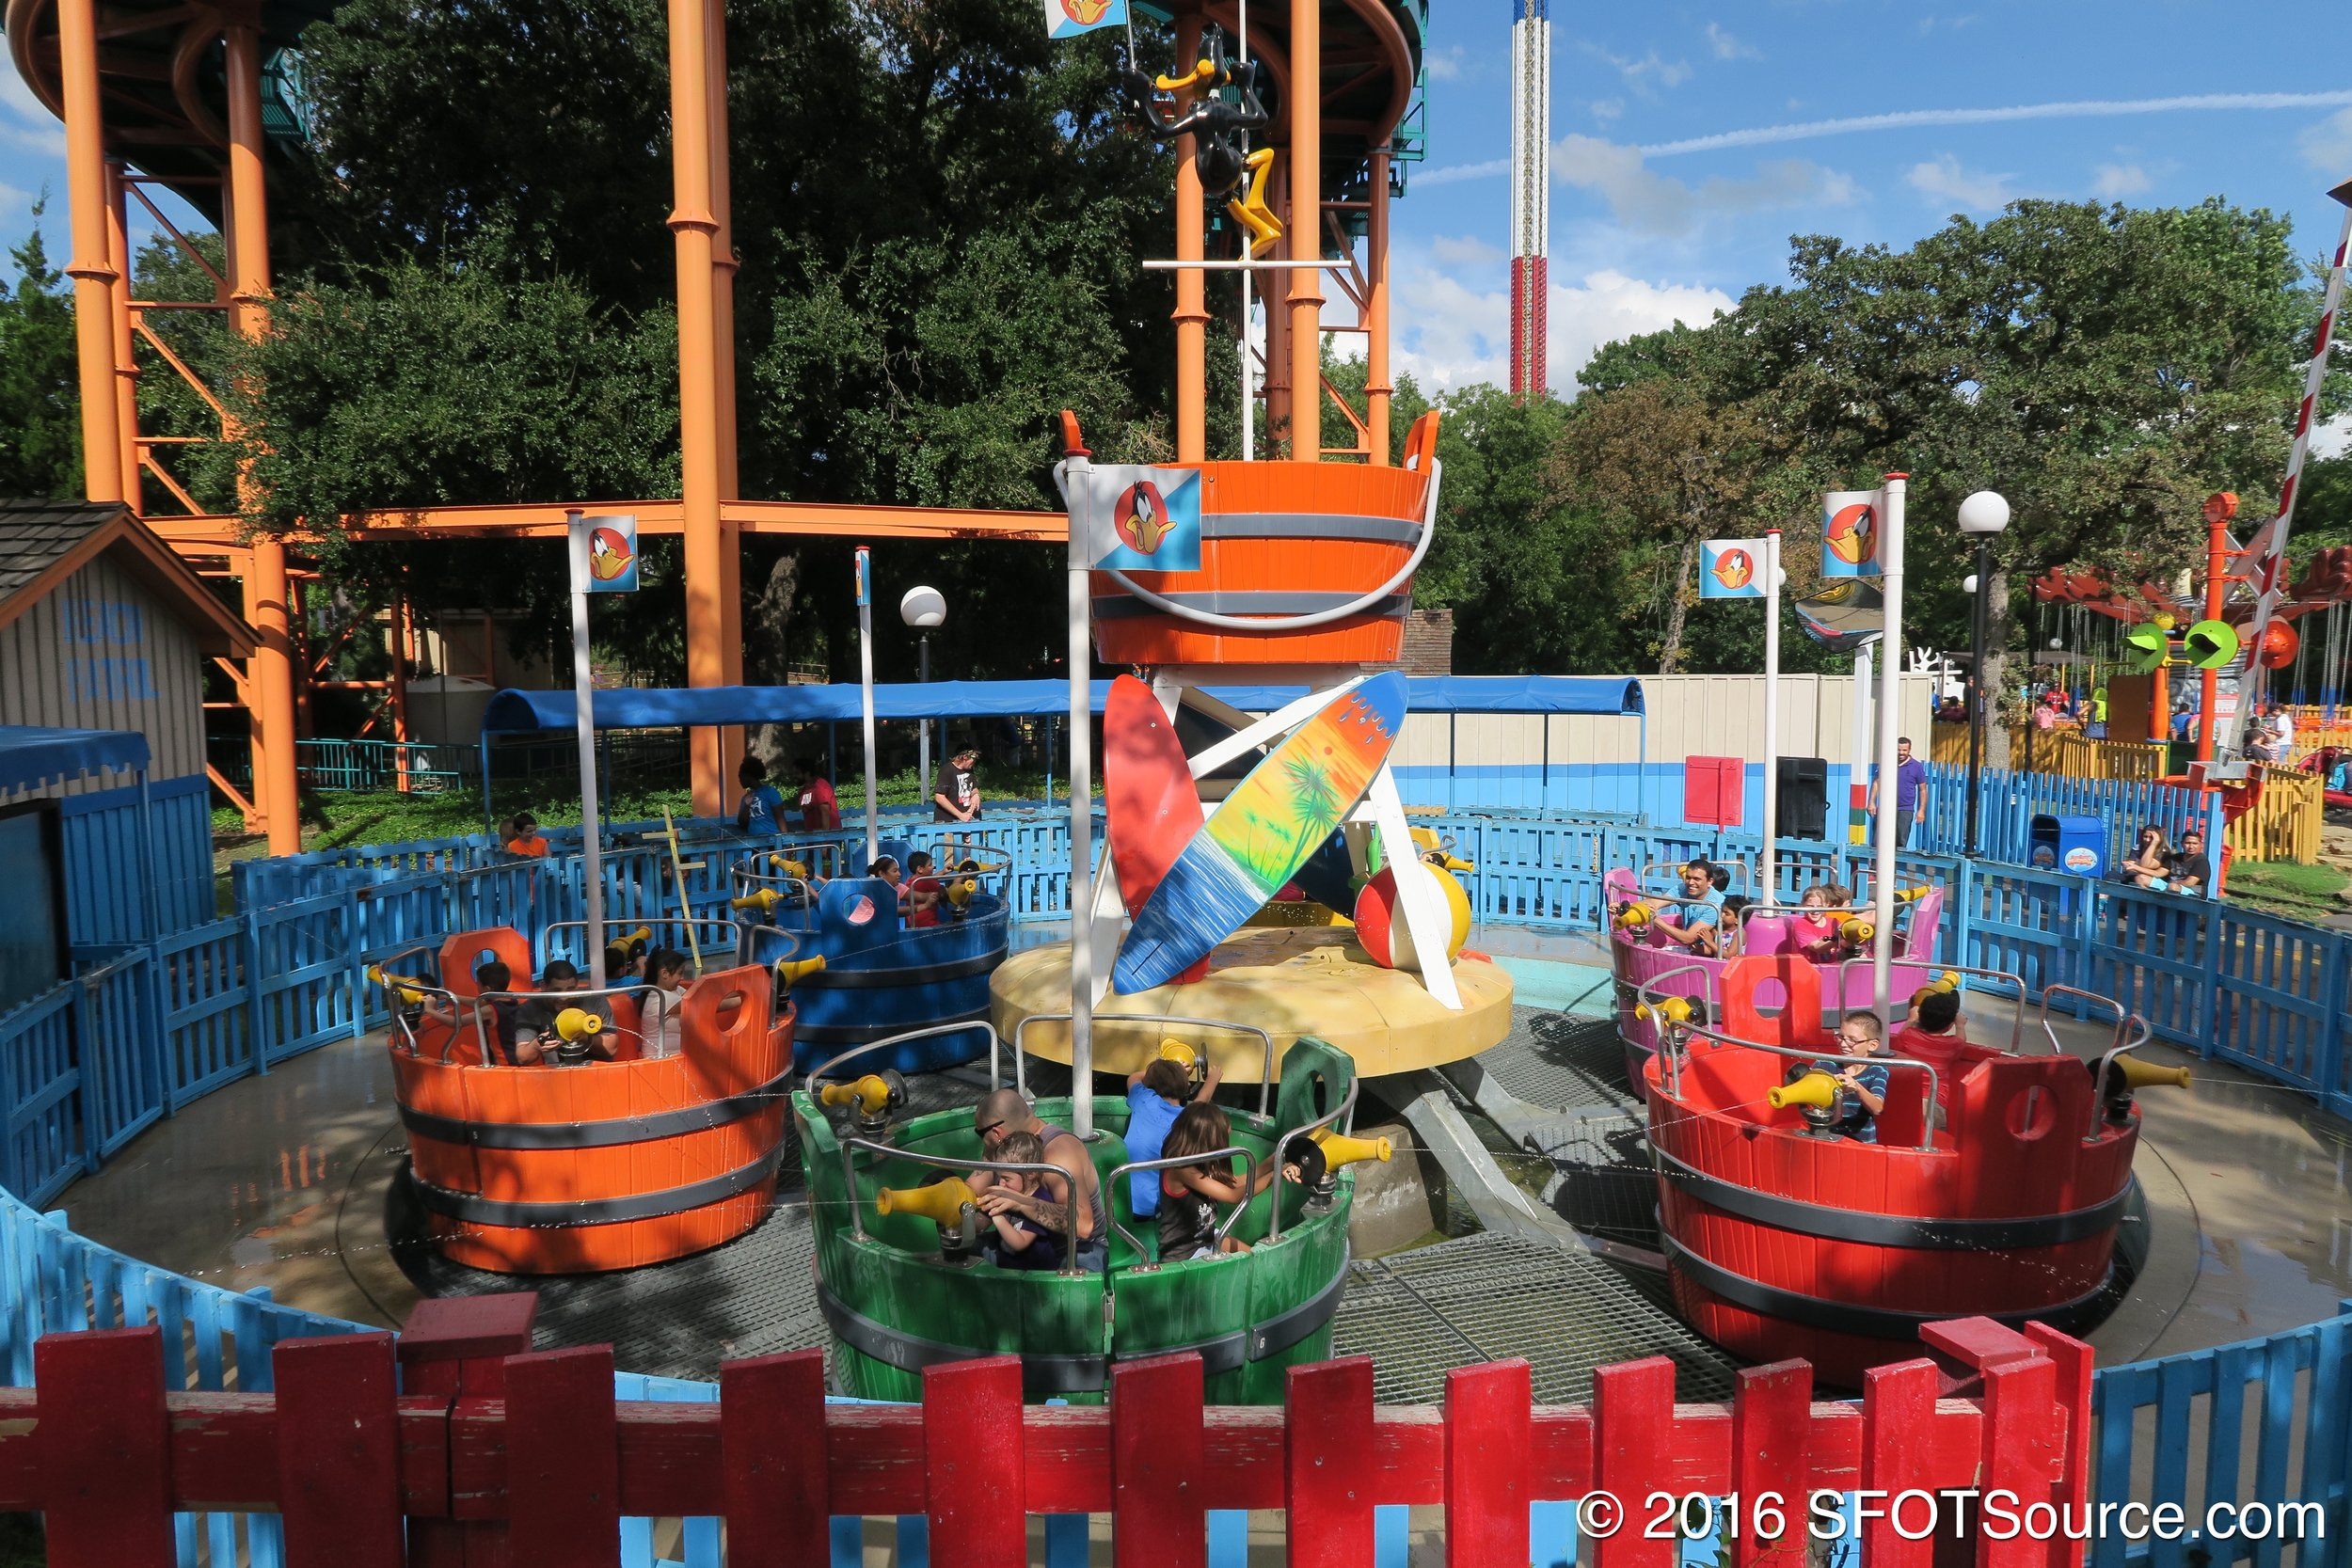 The ride spins while guests attempt to spray each other.